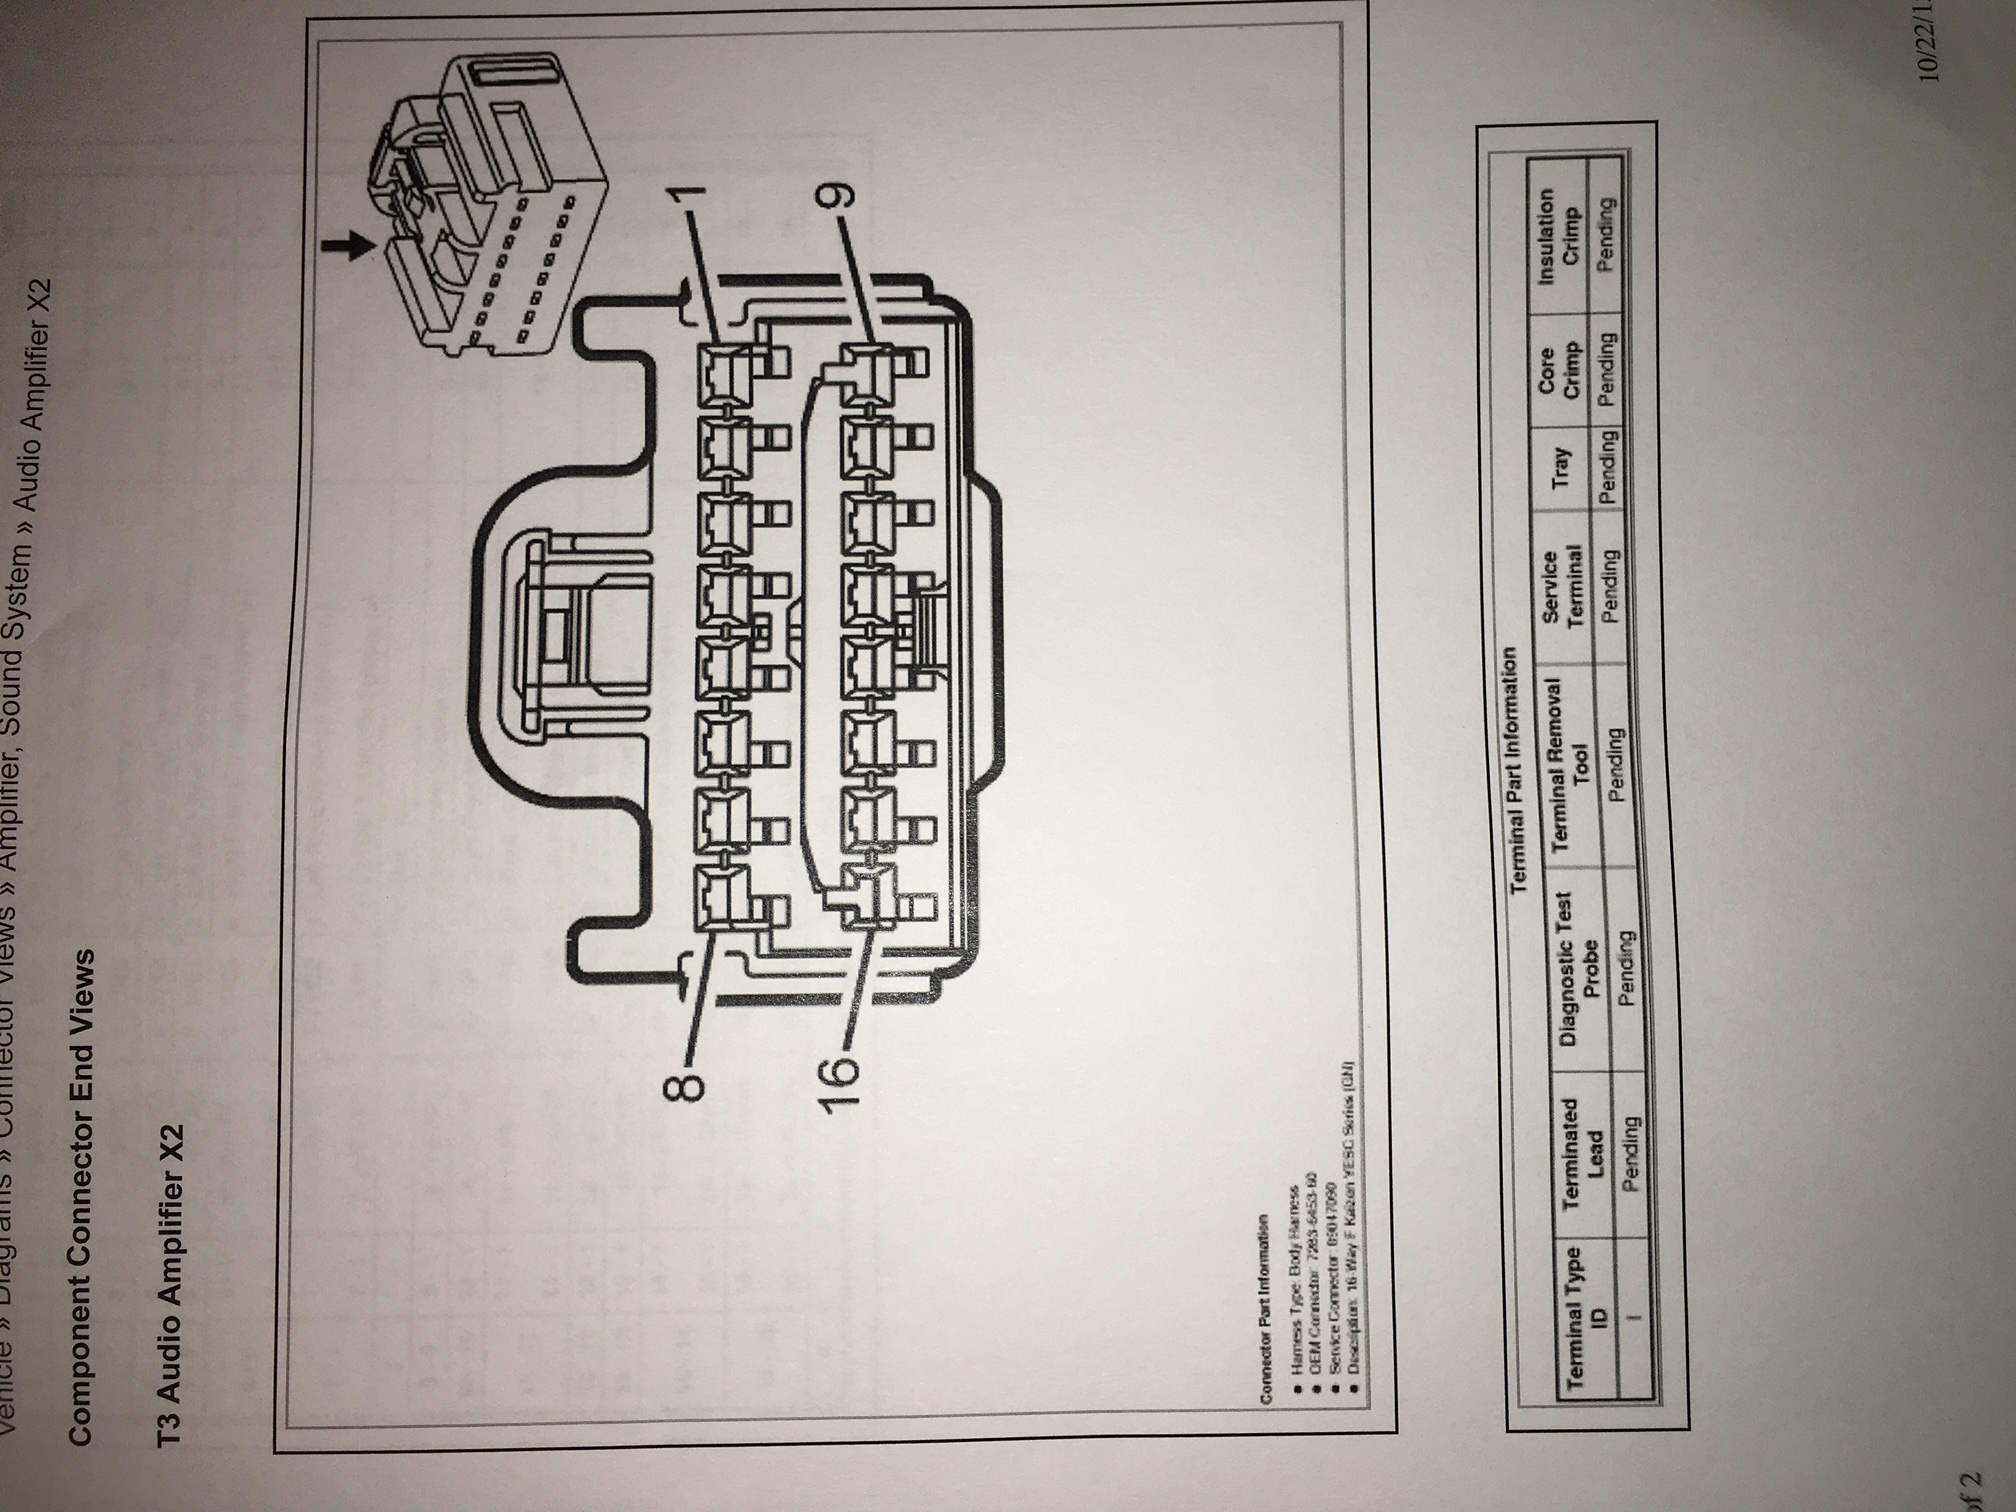 Wiring Diagram Moreover 1975 Corvette Wiring Diagram Besides Corvette